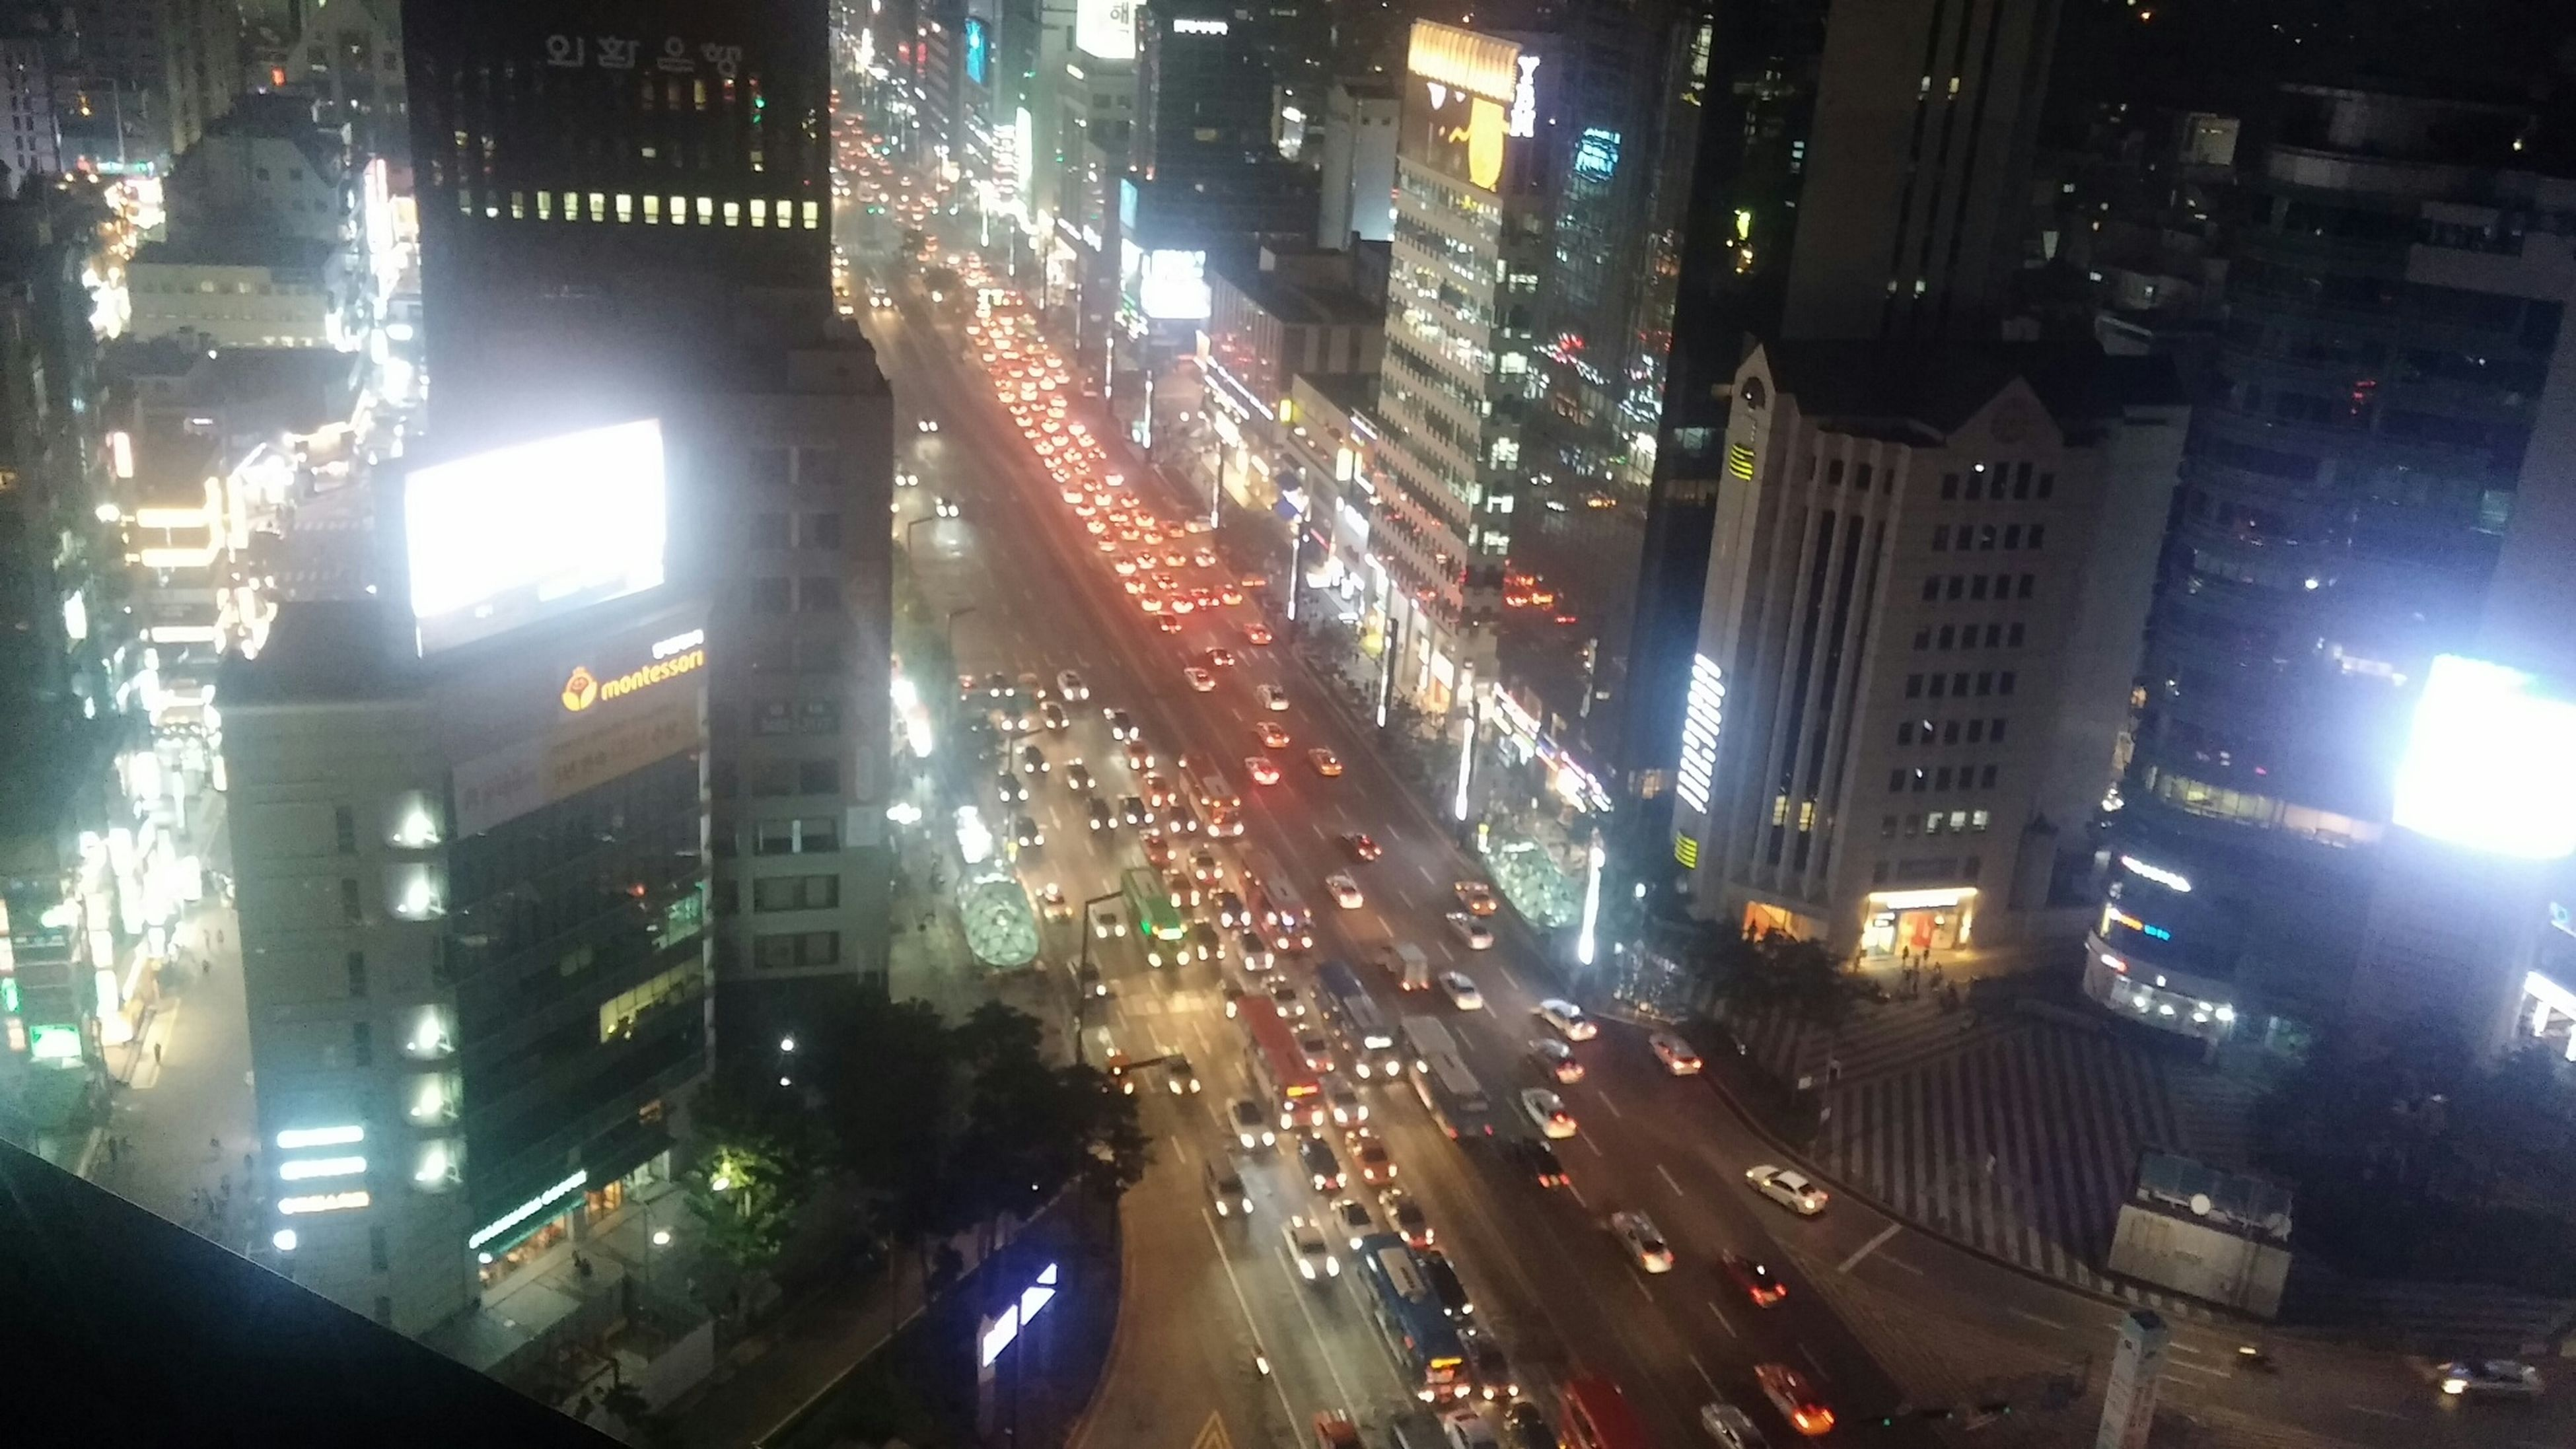 city, building exterior, architecture, illuminated, built structure, street, night, transportation, car, city street, city life, land vehicle, traffic, road, skyscraper, office building, high angle view, mode of transport, building, cityscape